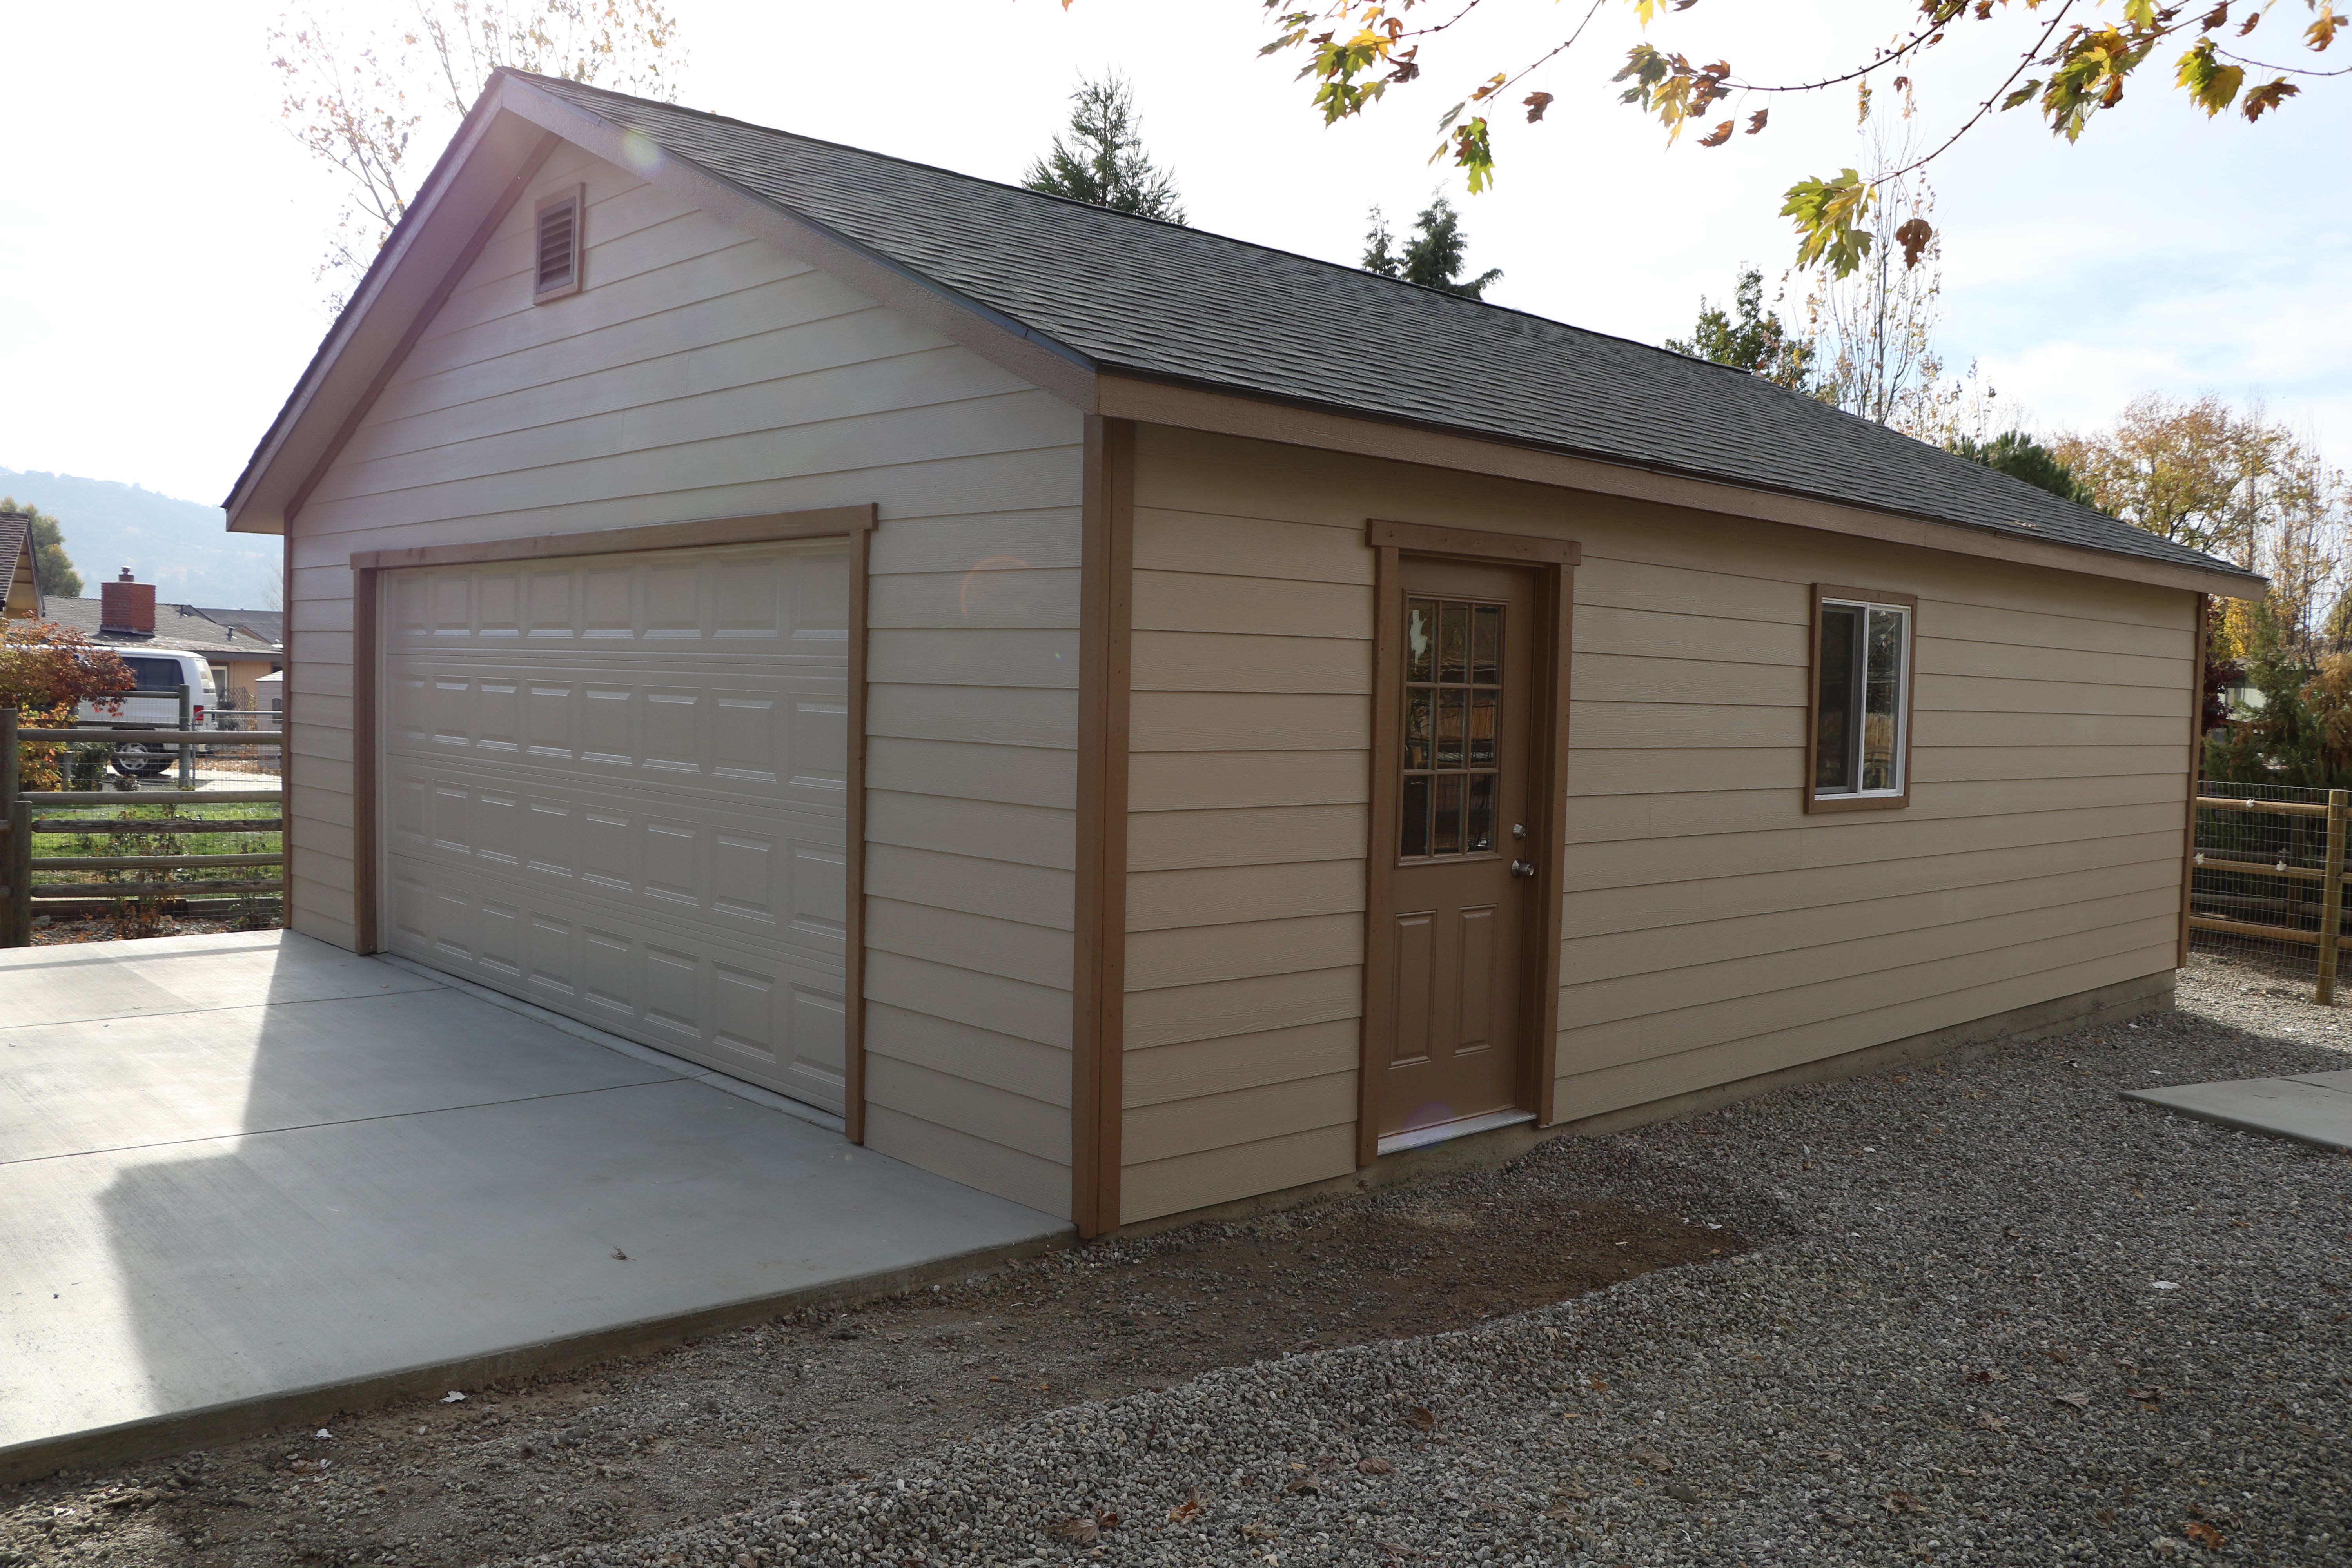 Storage Shed Construction Tuff Shed Shed Roof Types